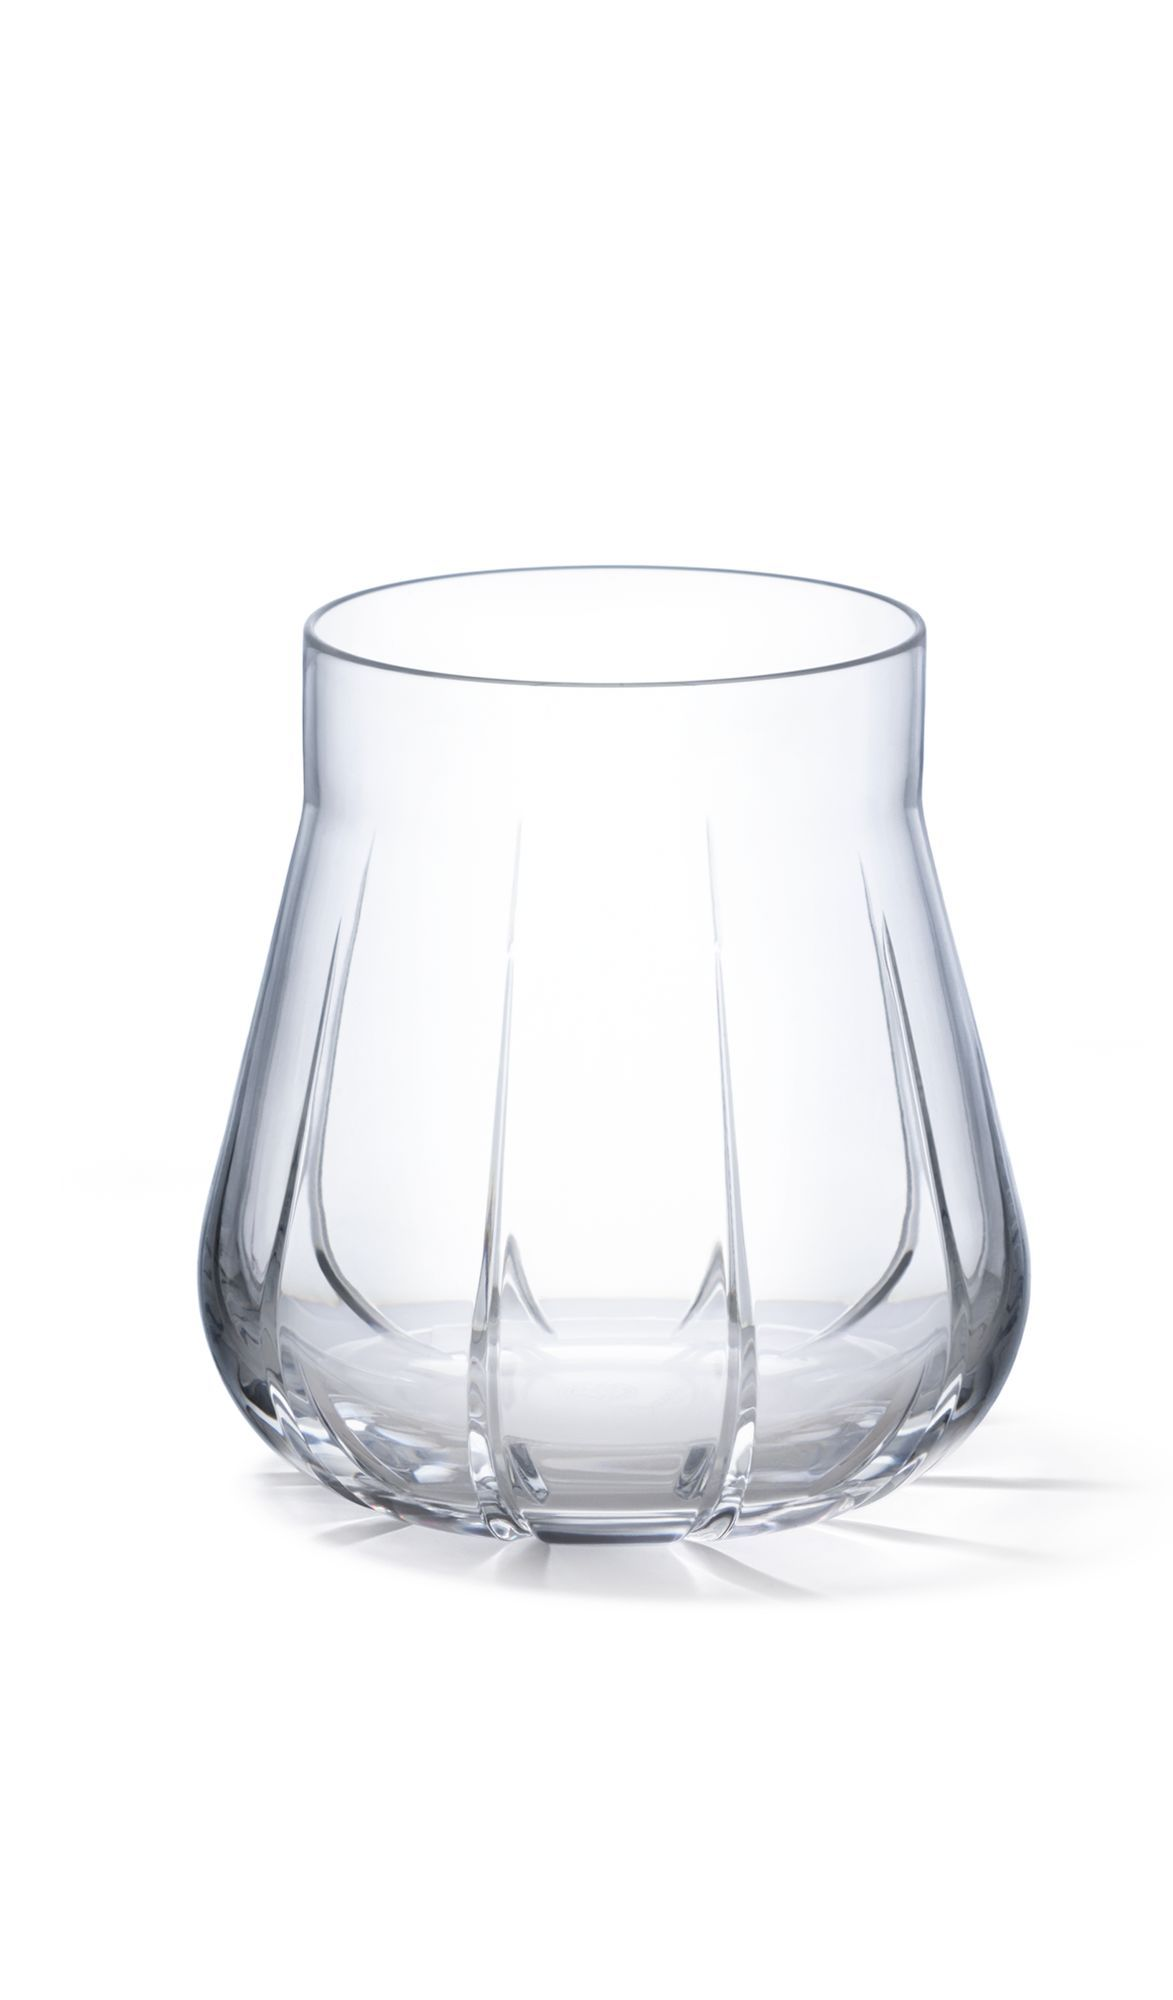 Baccarat Crystal Whisky Tasting Glass Whisky Glass Glass Whisky